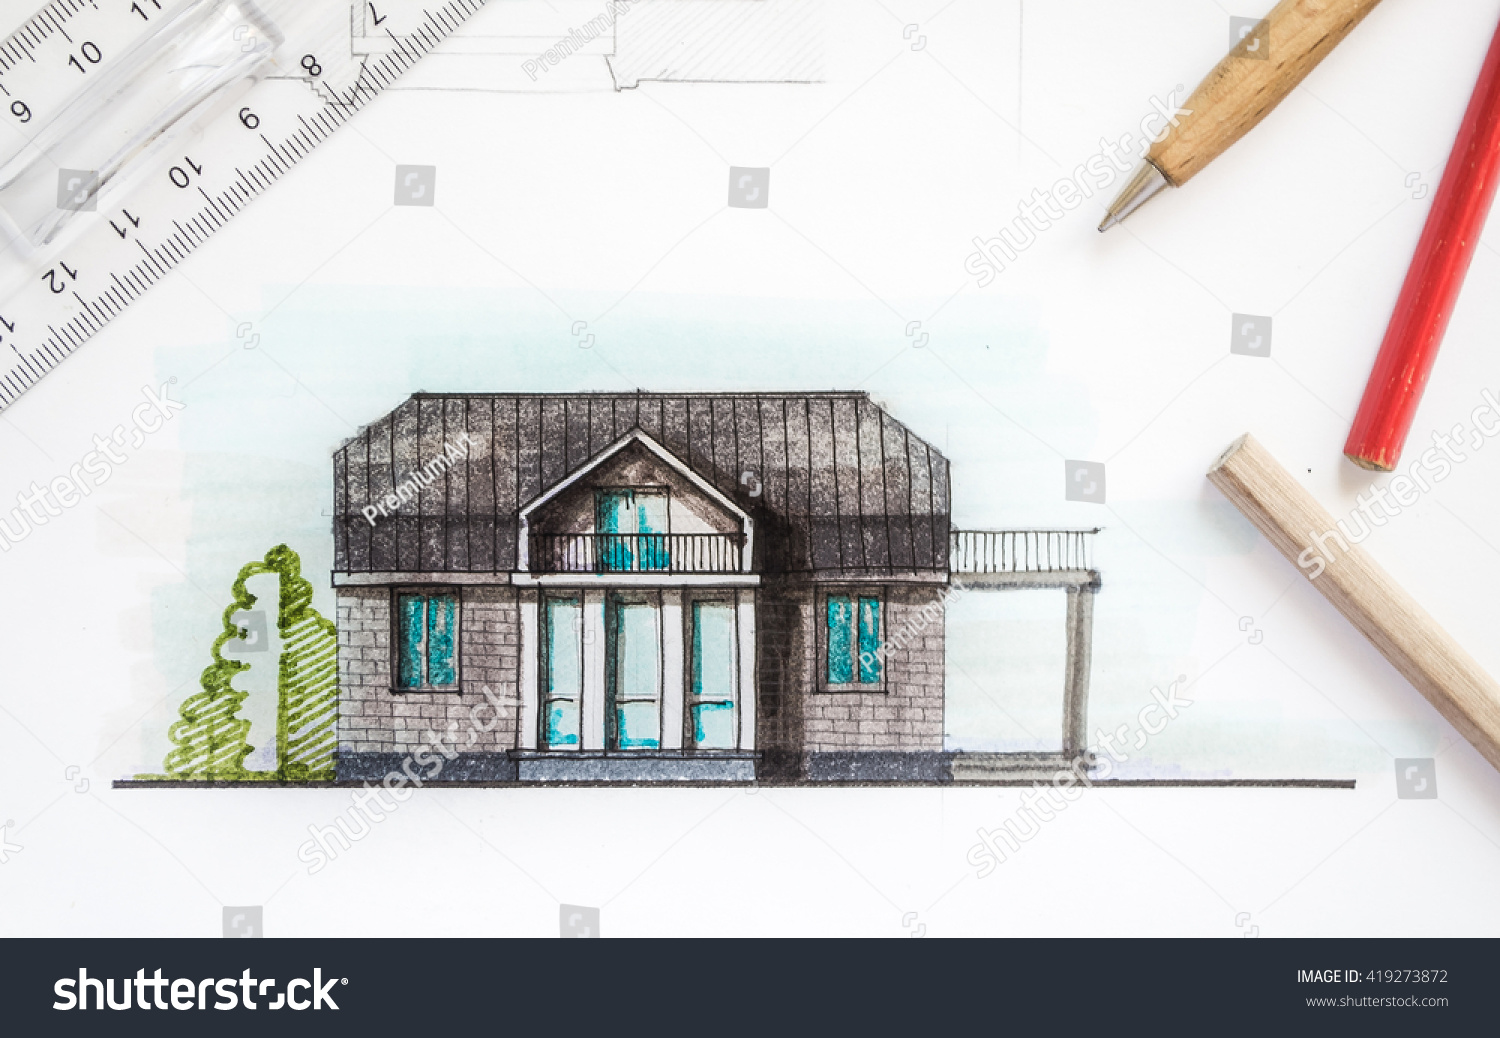 Awesome Interior Designer Or Architect Hand Working With Blueprints Equipment  Objects And Color Image Of Drawn House